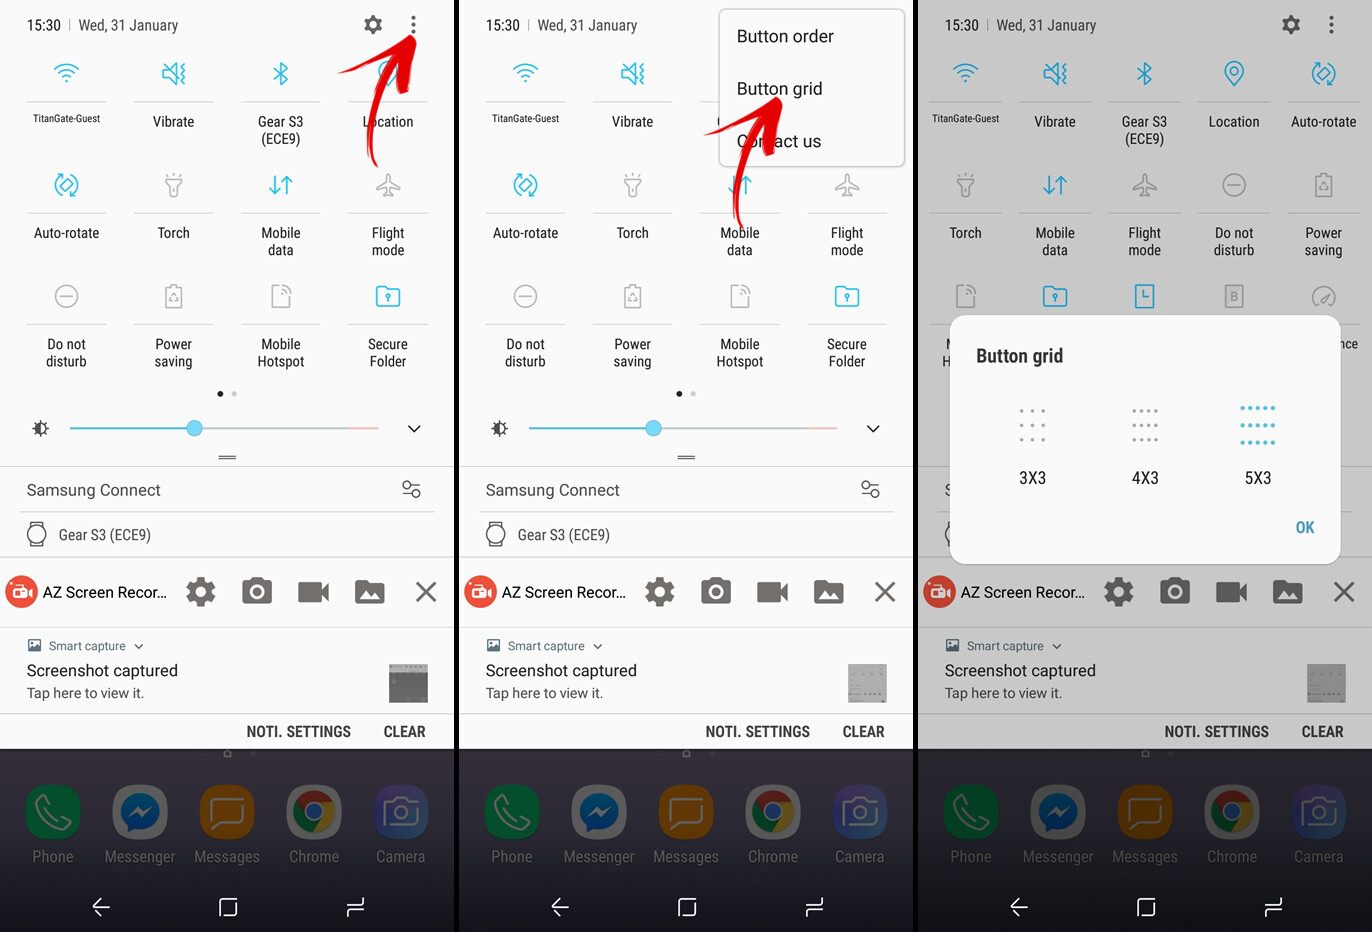 how to add exceptions to android do not disturb